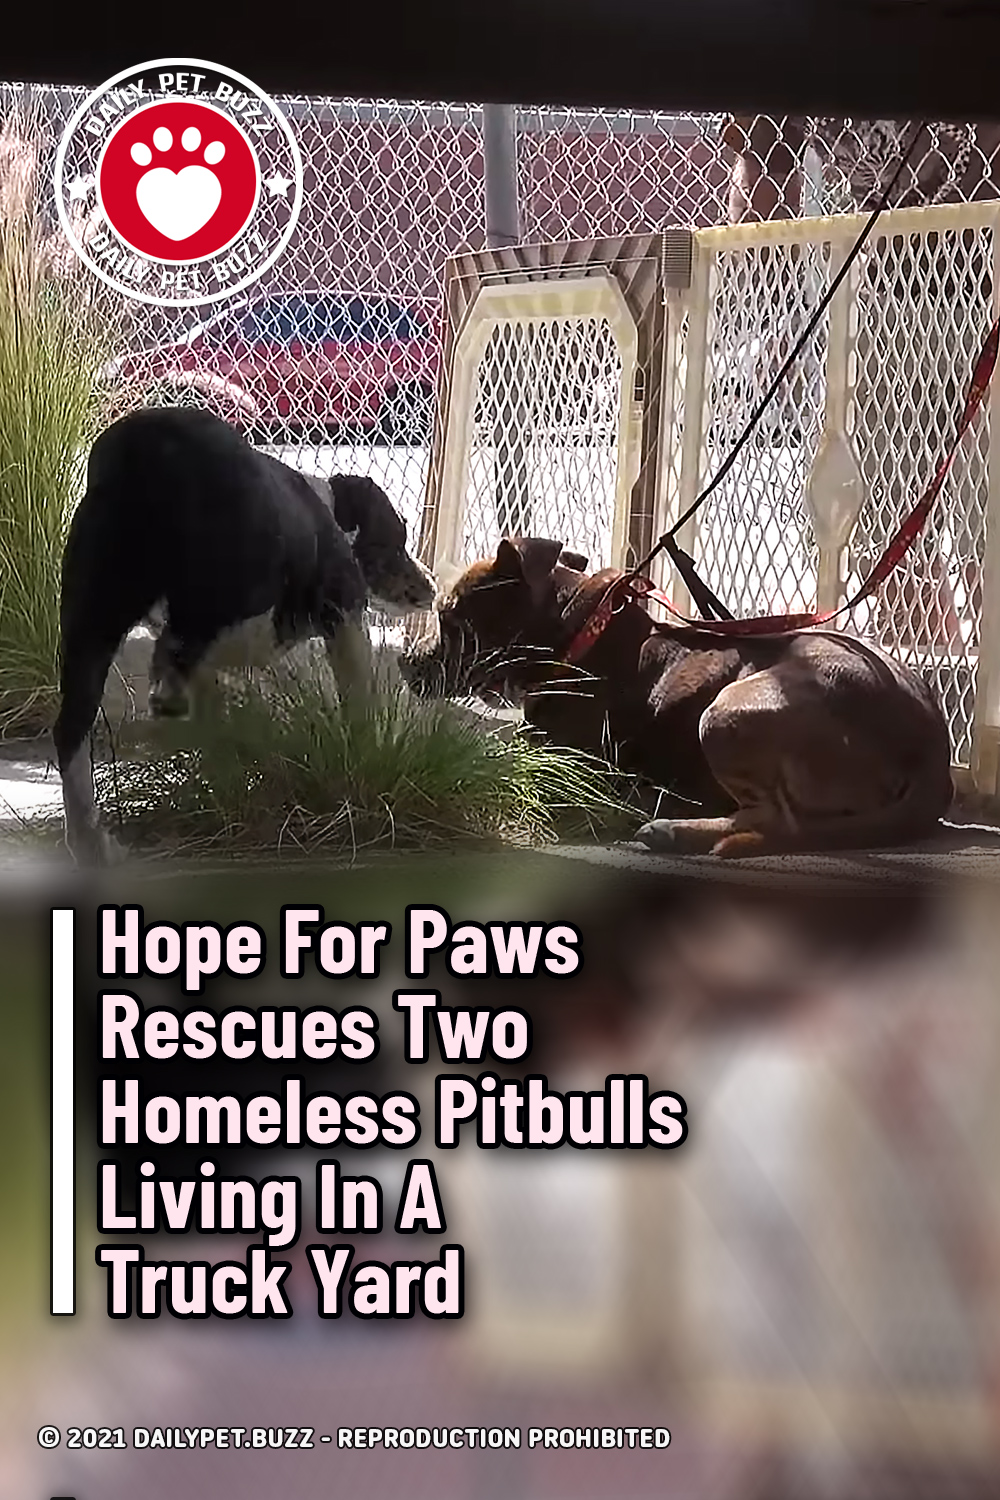 Hope For Paws Rescues Two Homeless Pitbulls Living In A Truck Yard